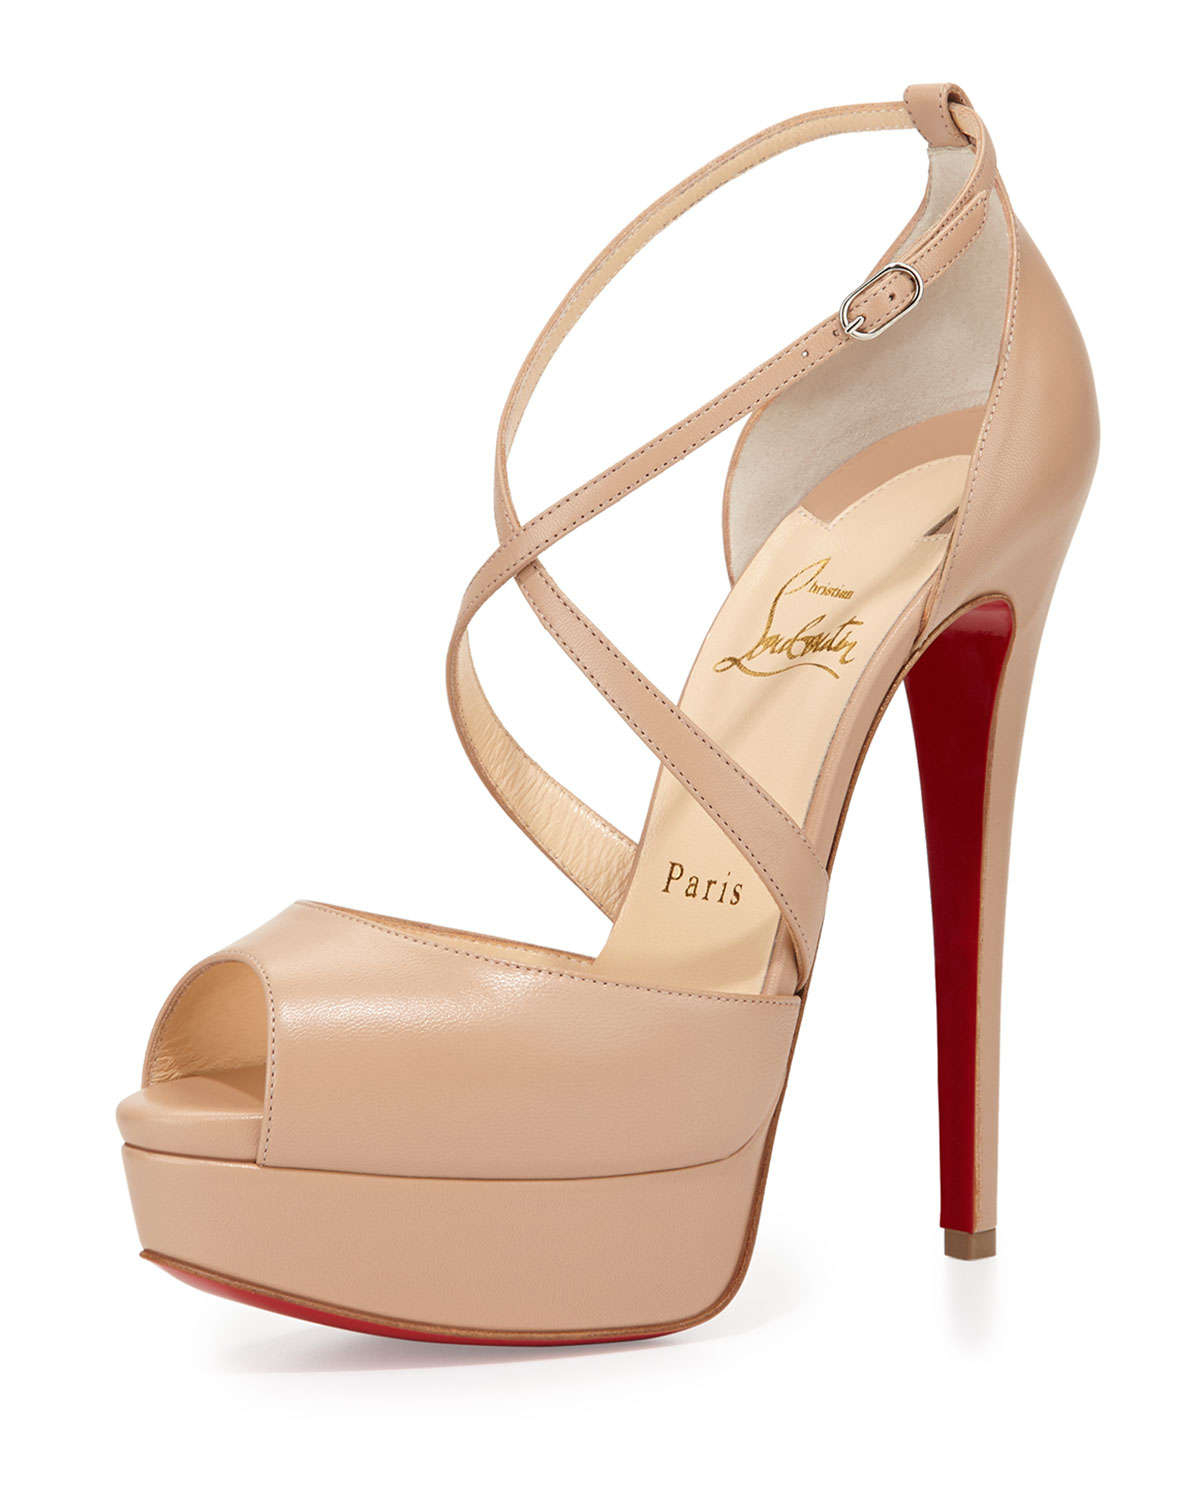 Christian Louboutin Platforms outlete